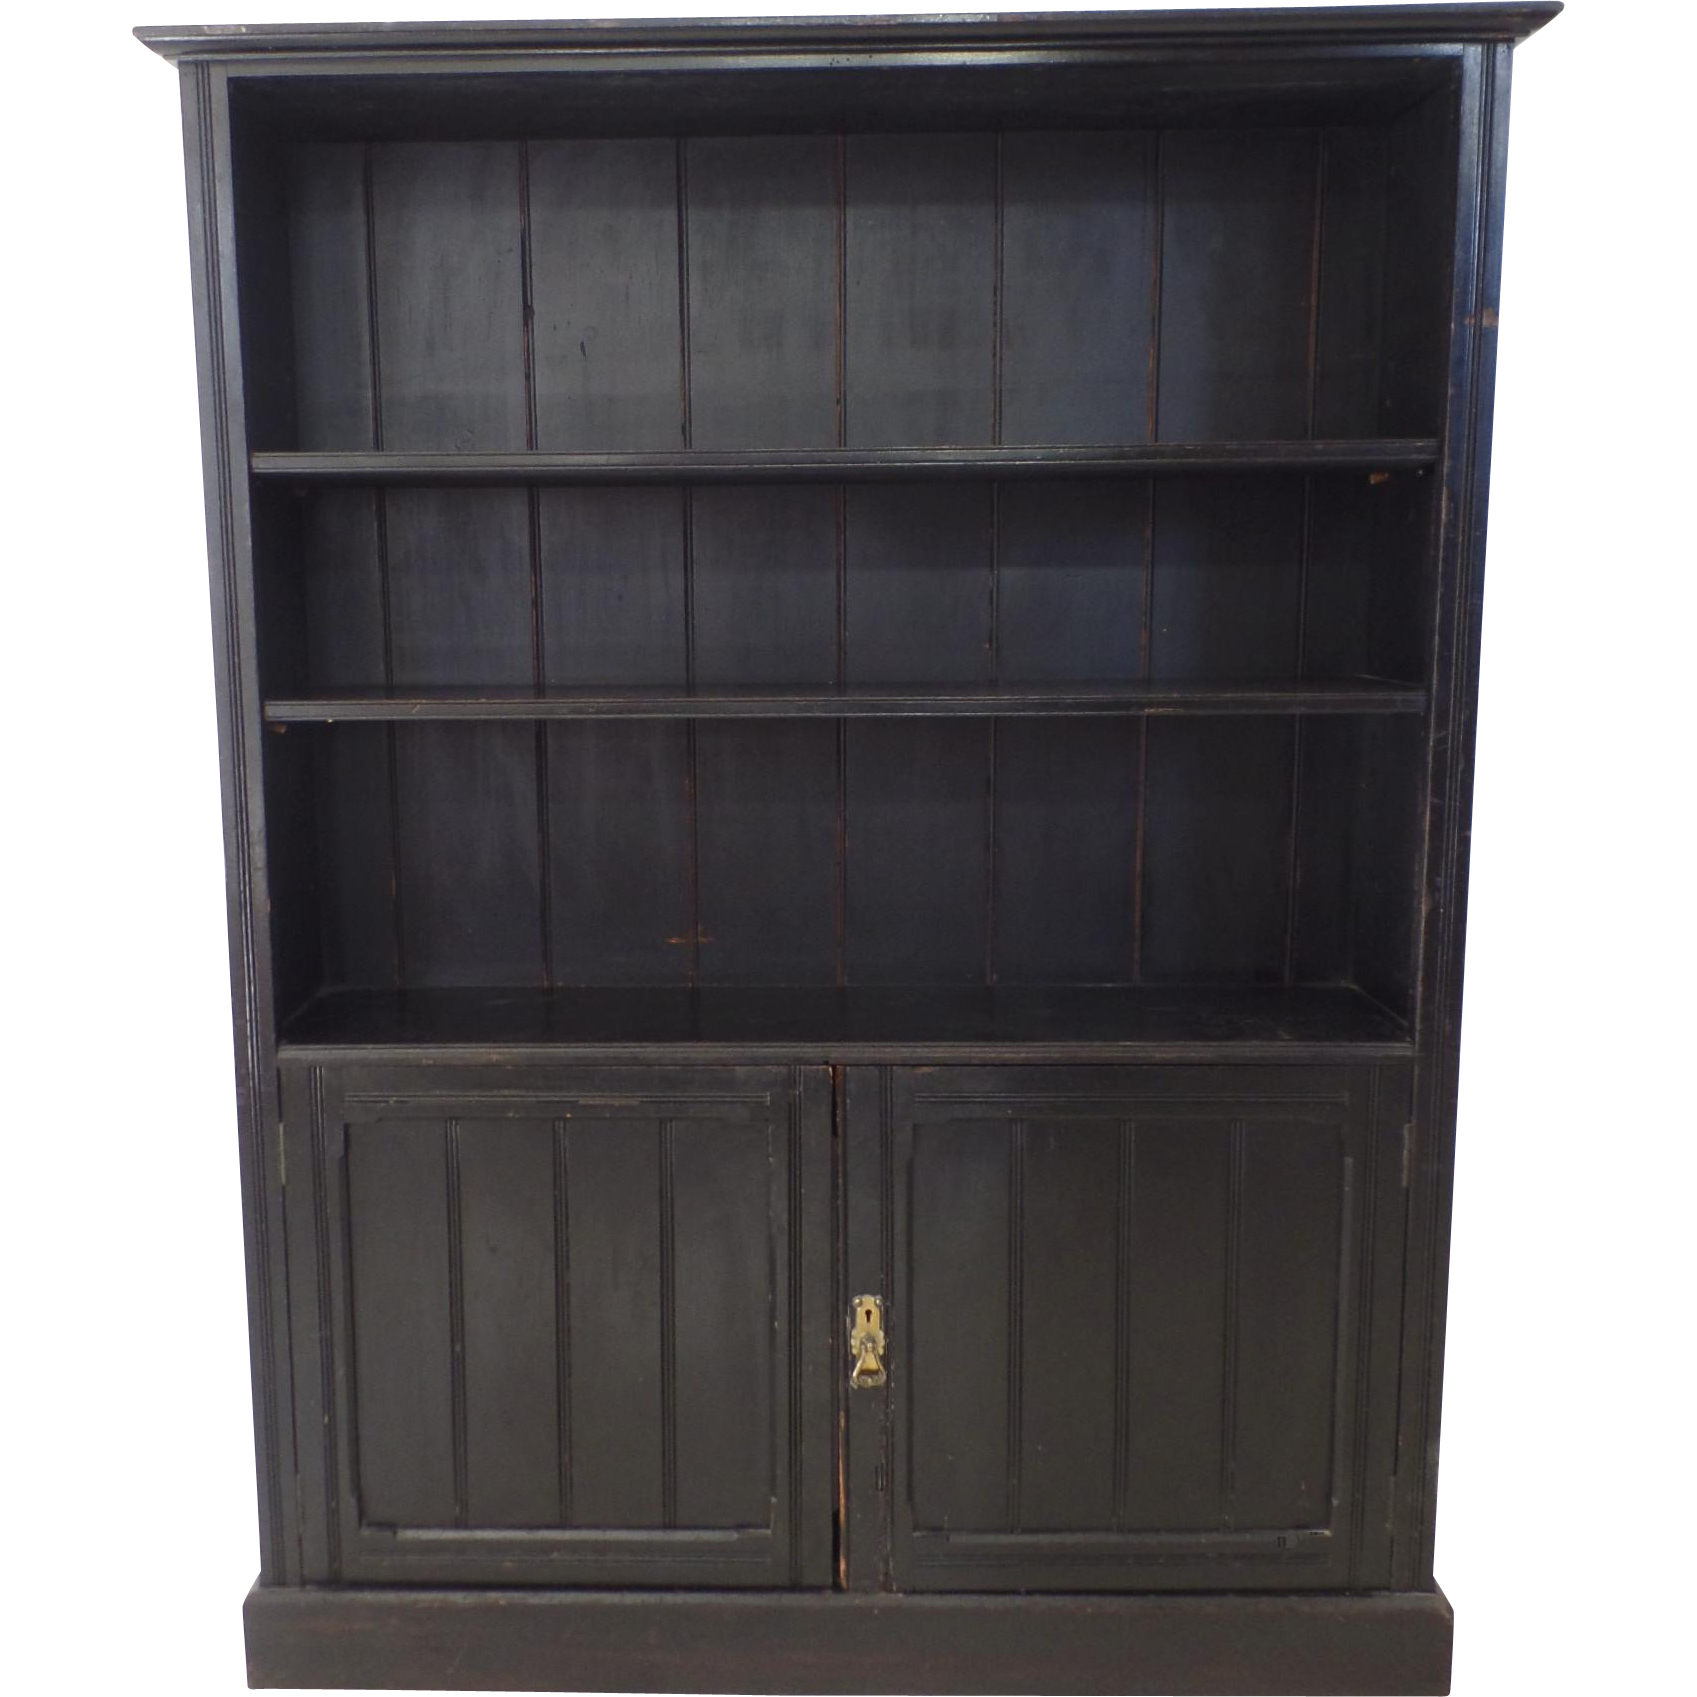 Very Impressive portraiture of Arts & Crafts Ebonized Black Narrow Bookcase Cupboard c 1900 from  with #847047 color and 1697x1697 pixels